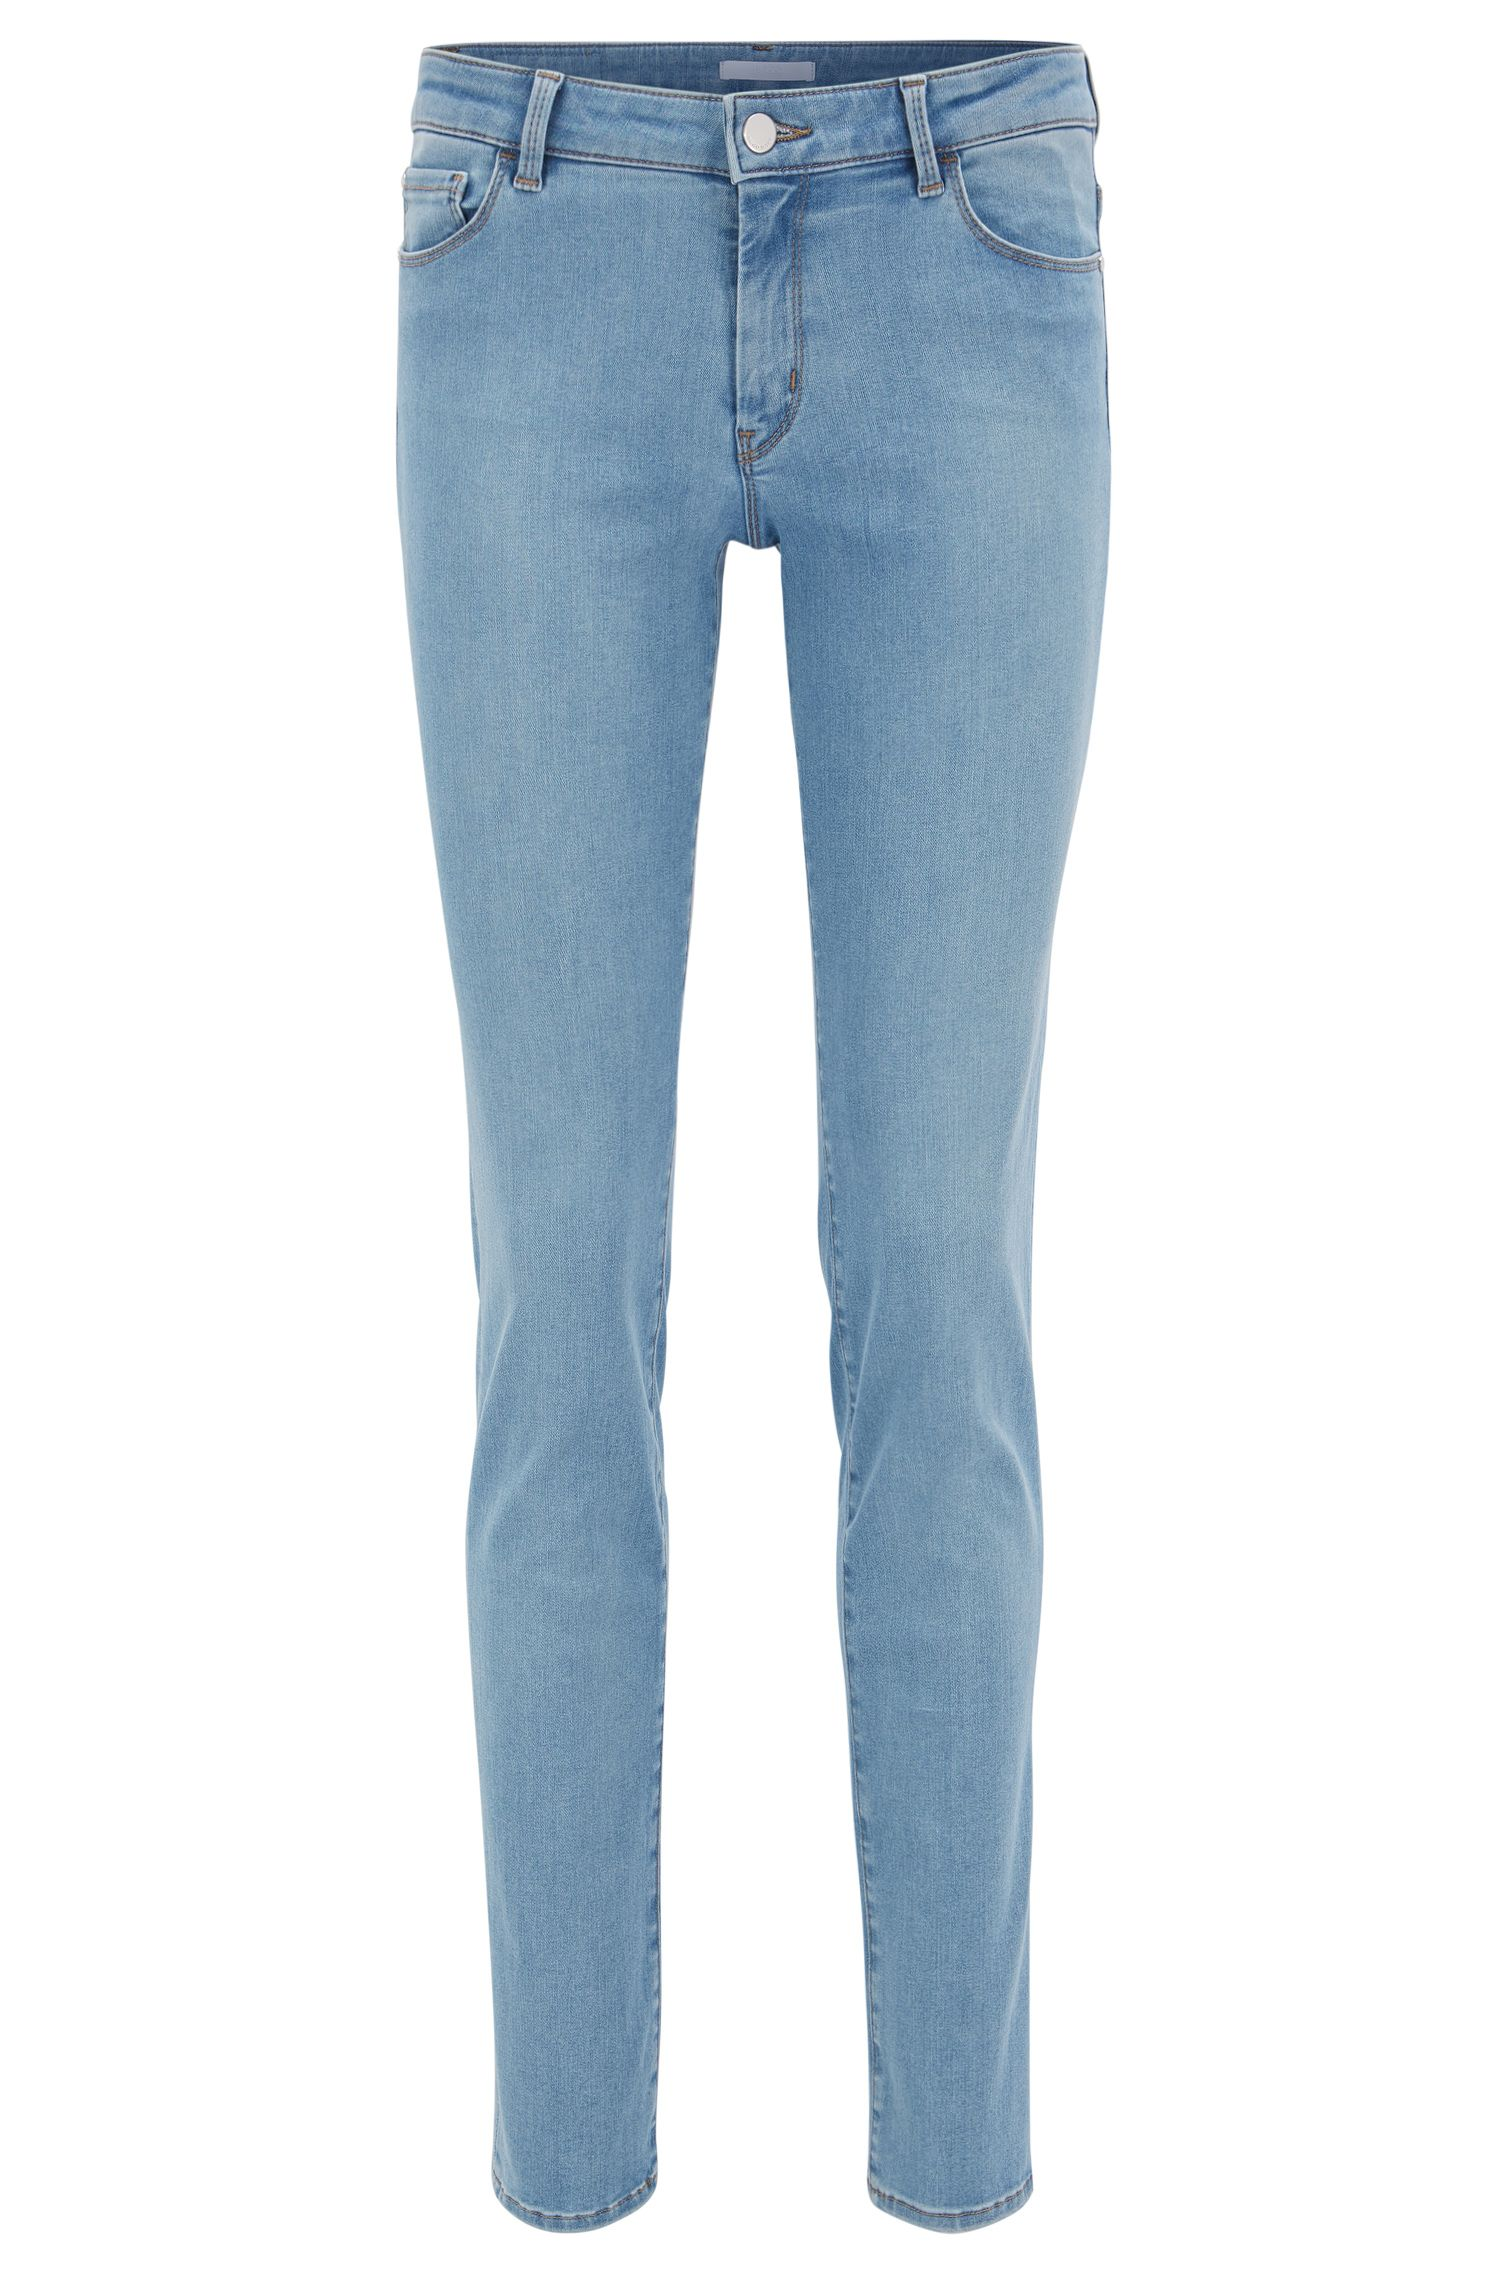 Bright-blue super-stretch jeans in a regular fit